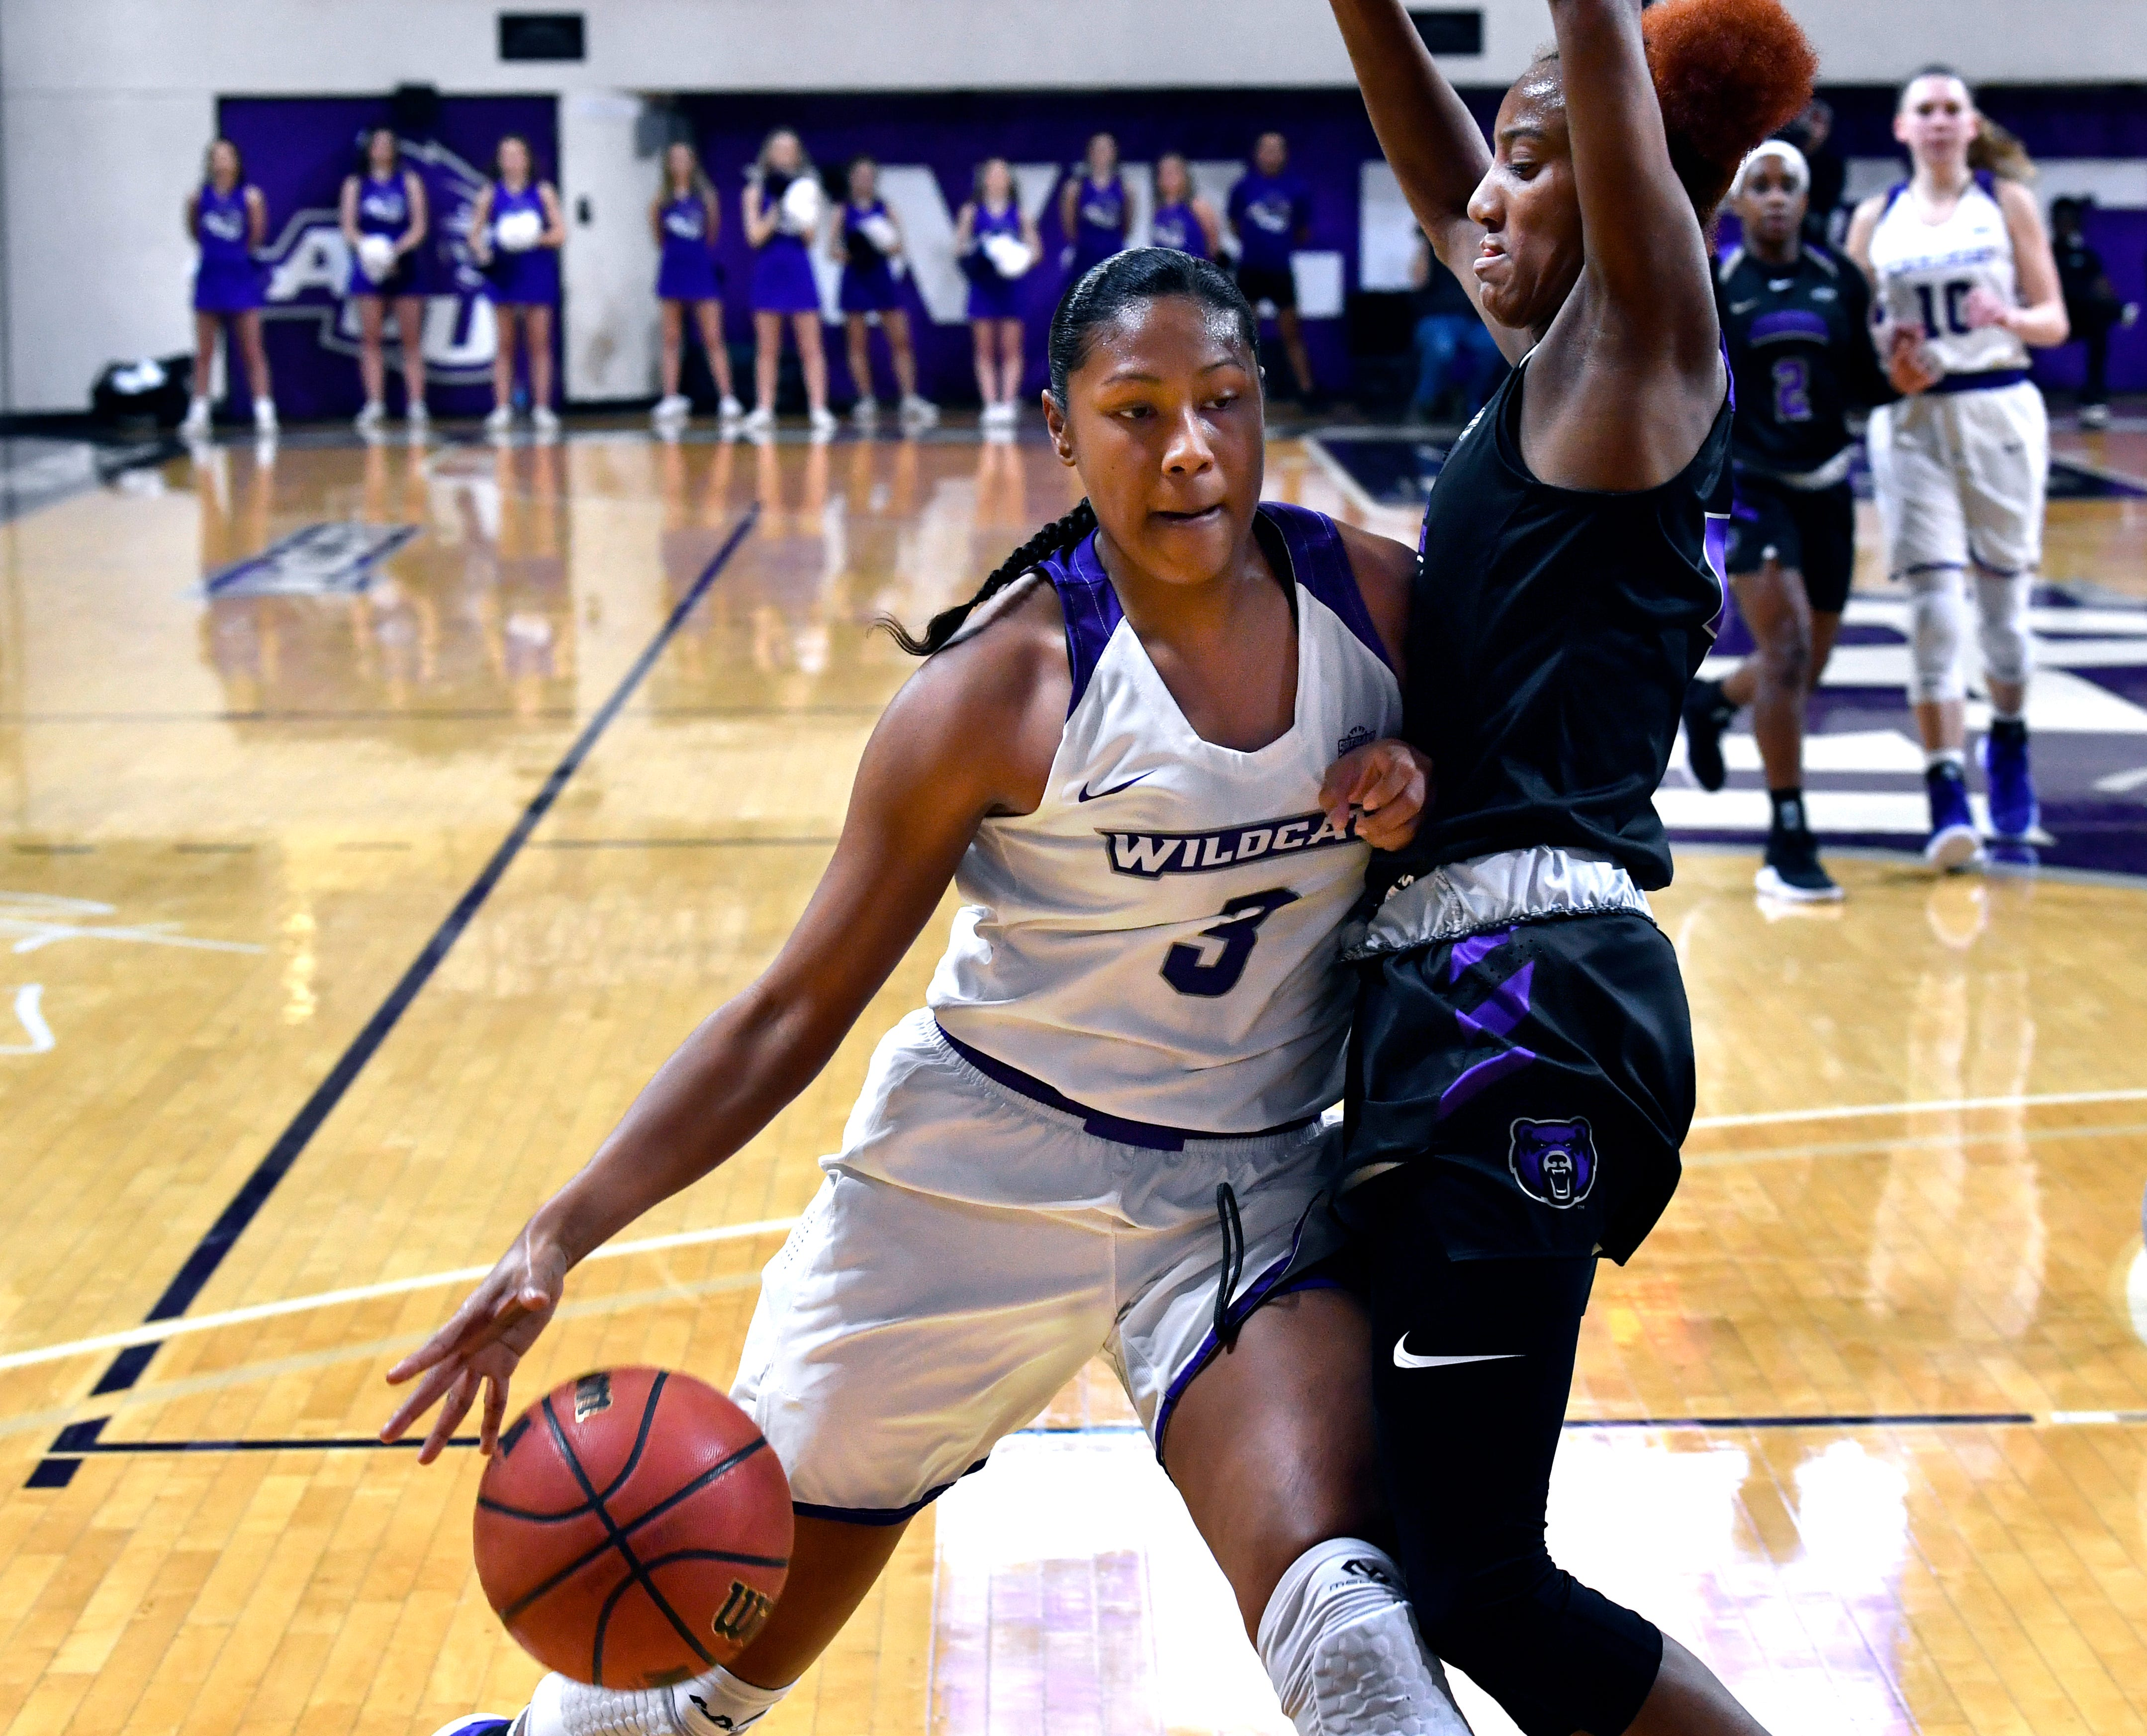 Lady Wildcats Dominique Golightly elbows into Central Arkansas' Taylor Sells during Saturday's women's basketball game at Abilene Christian University. Final score was 77-70, ACU.